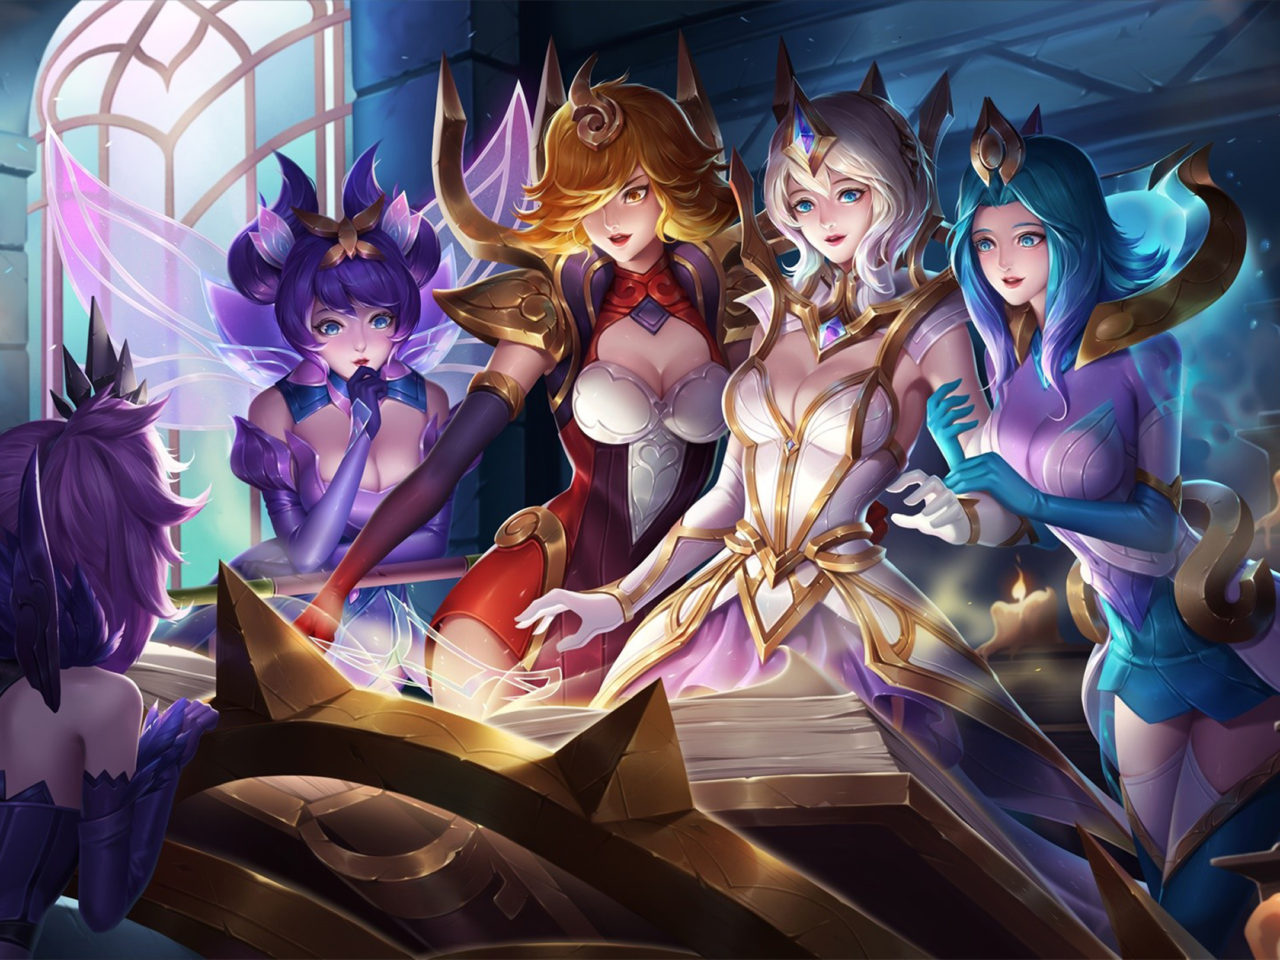 Dark Wallpapers For Iphone X Elementalist Lux Skin Video Game League Of Angel Fan Art